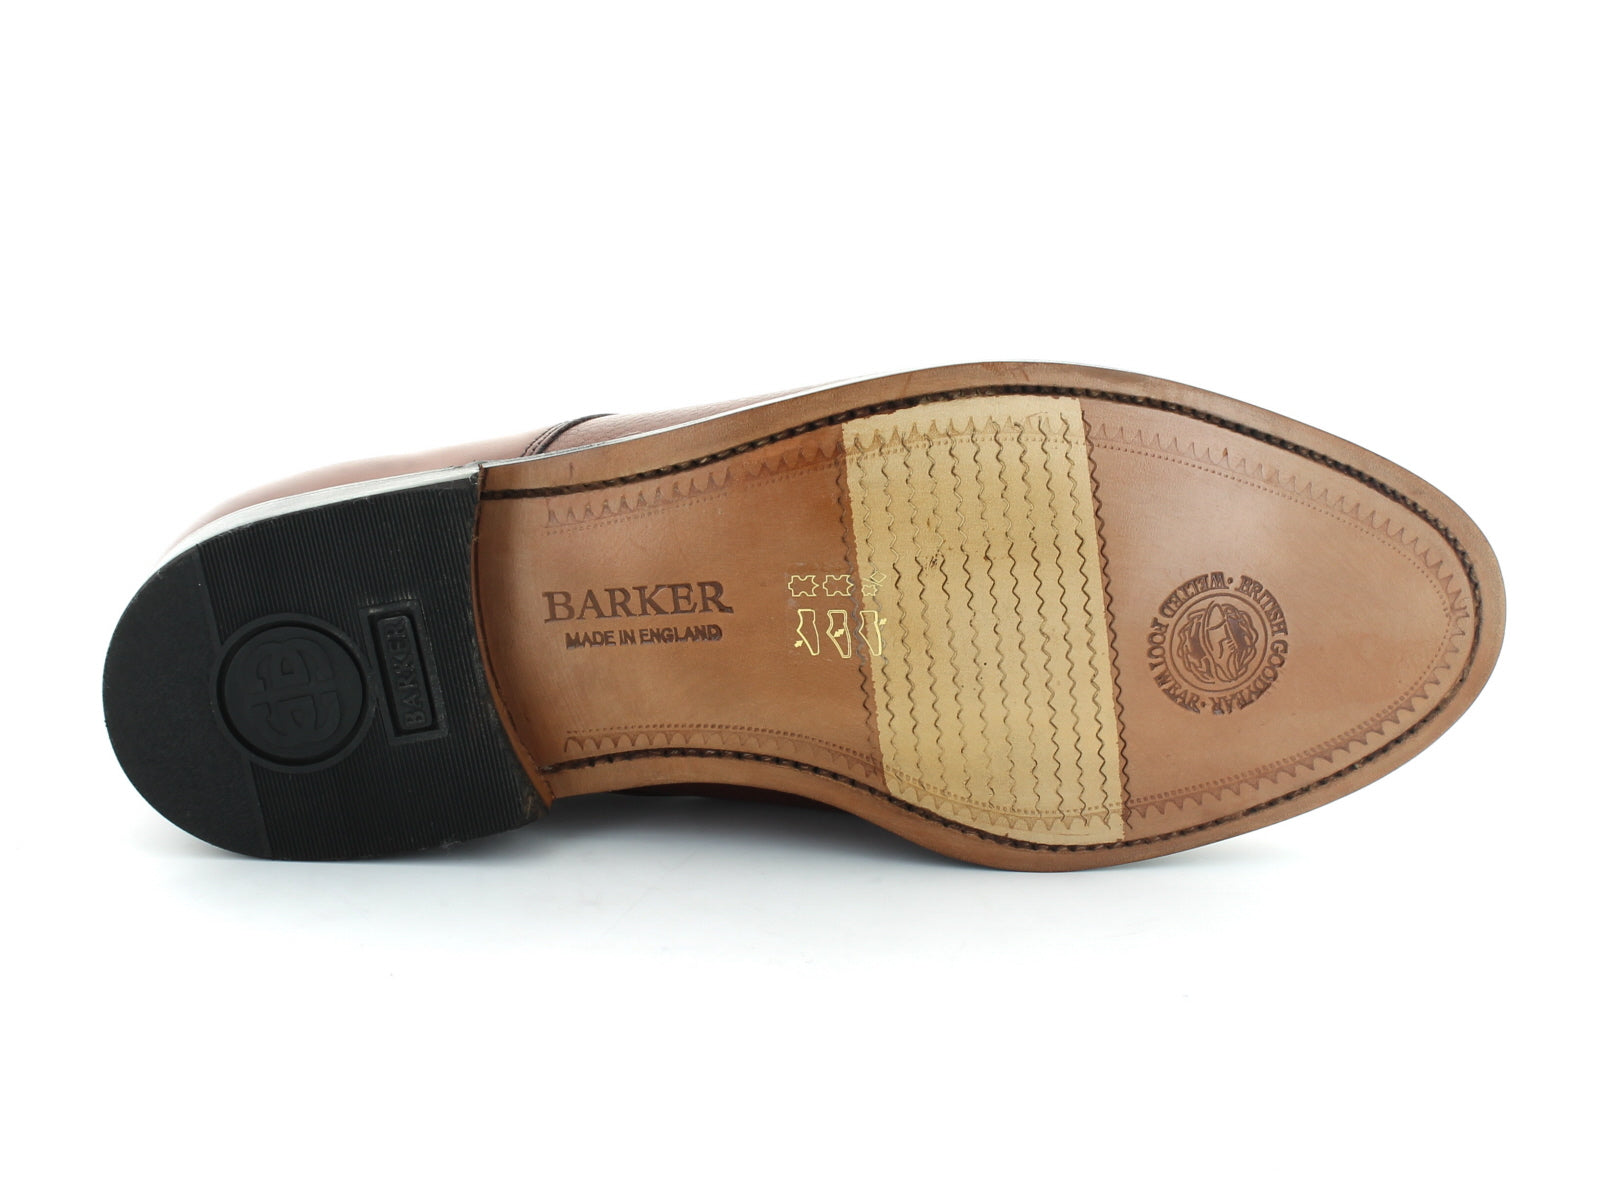 Barker Staines in Rosewood Leather sole view